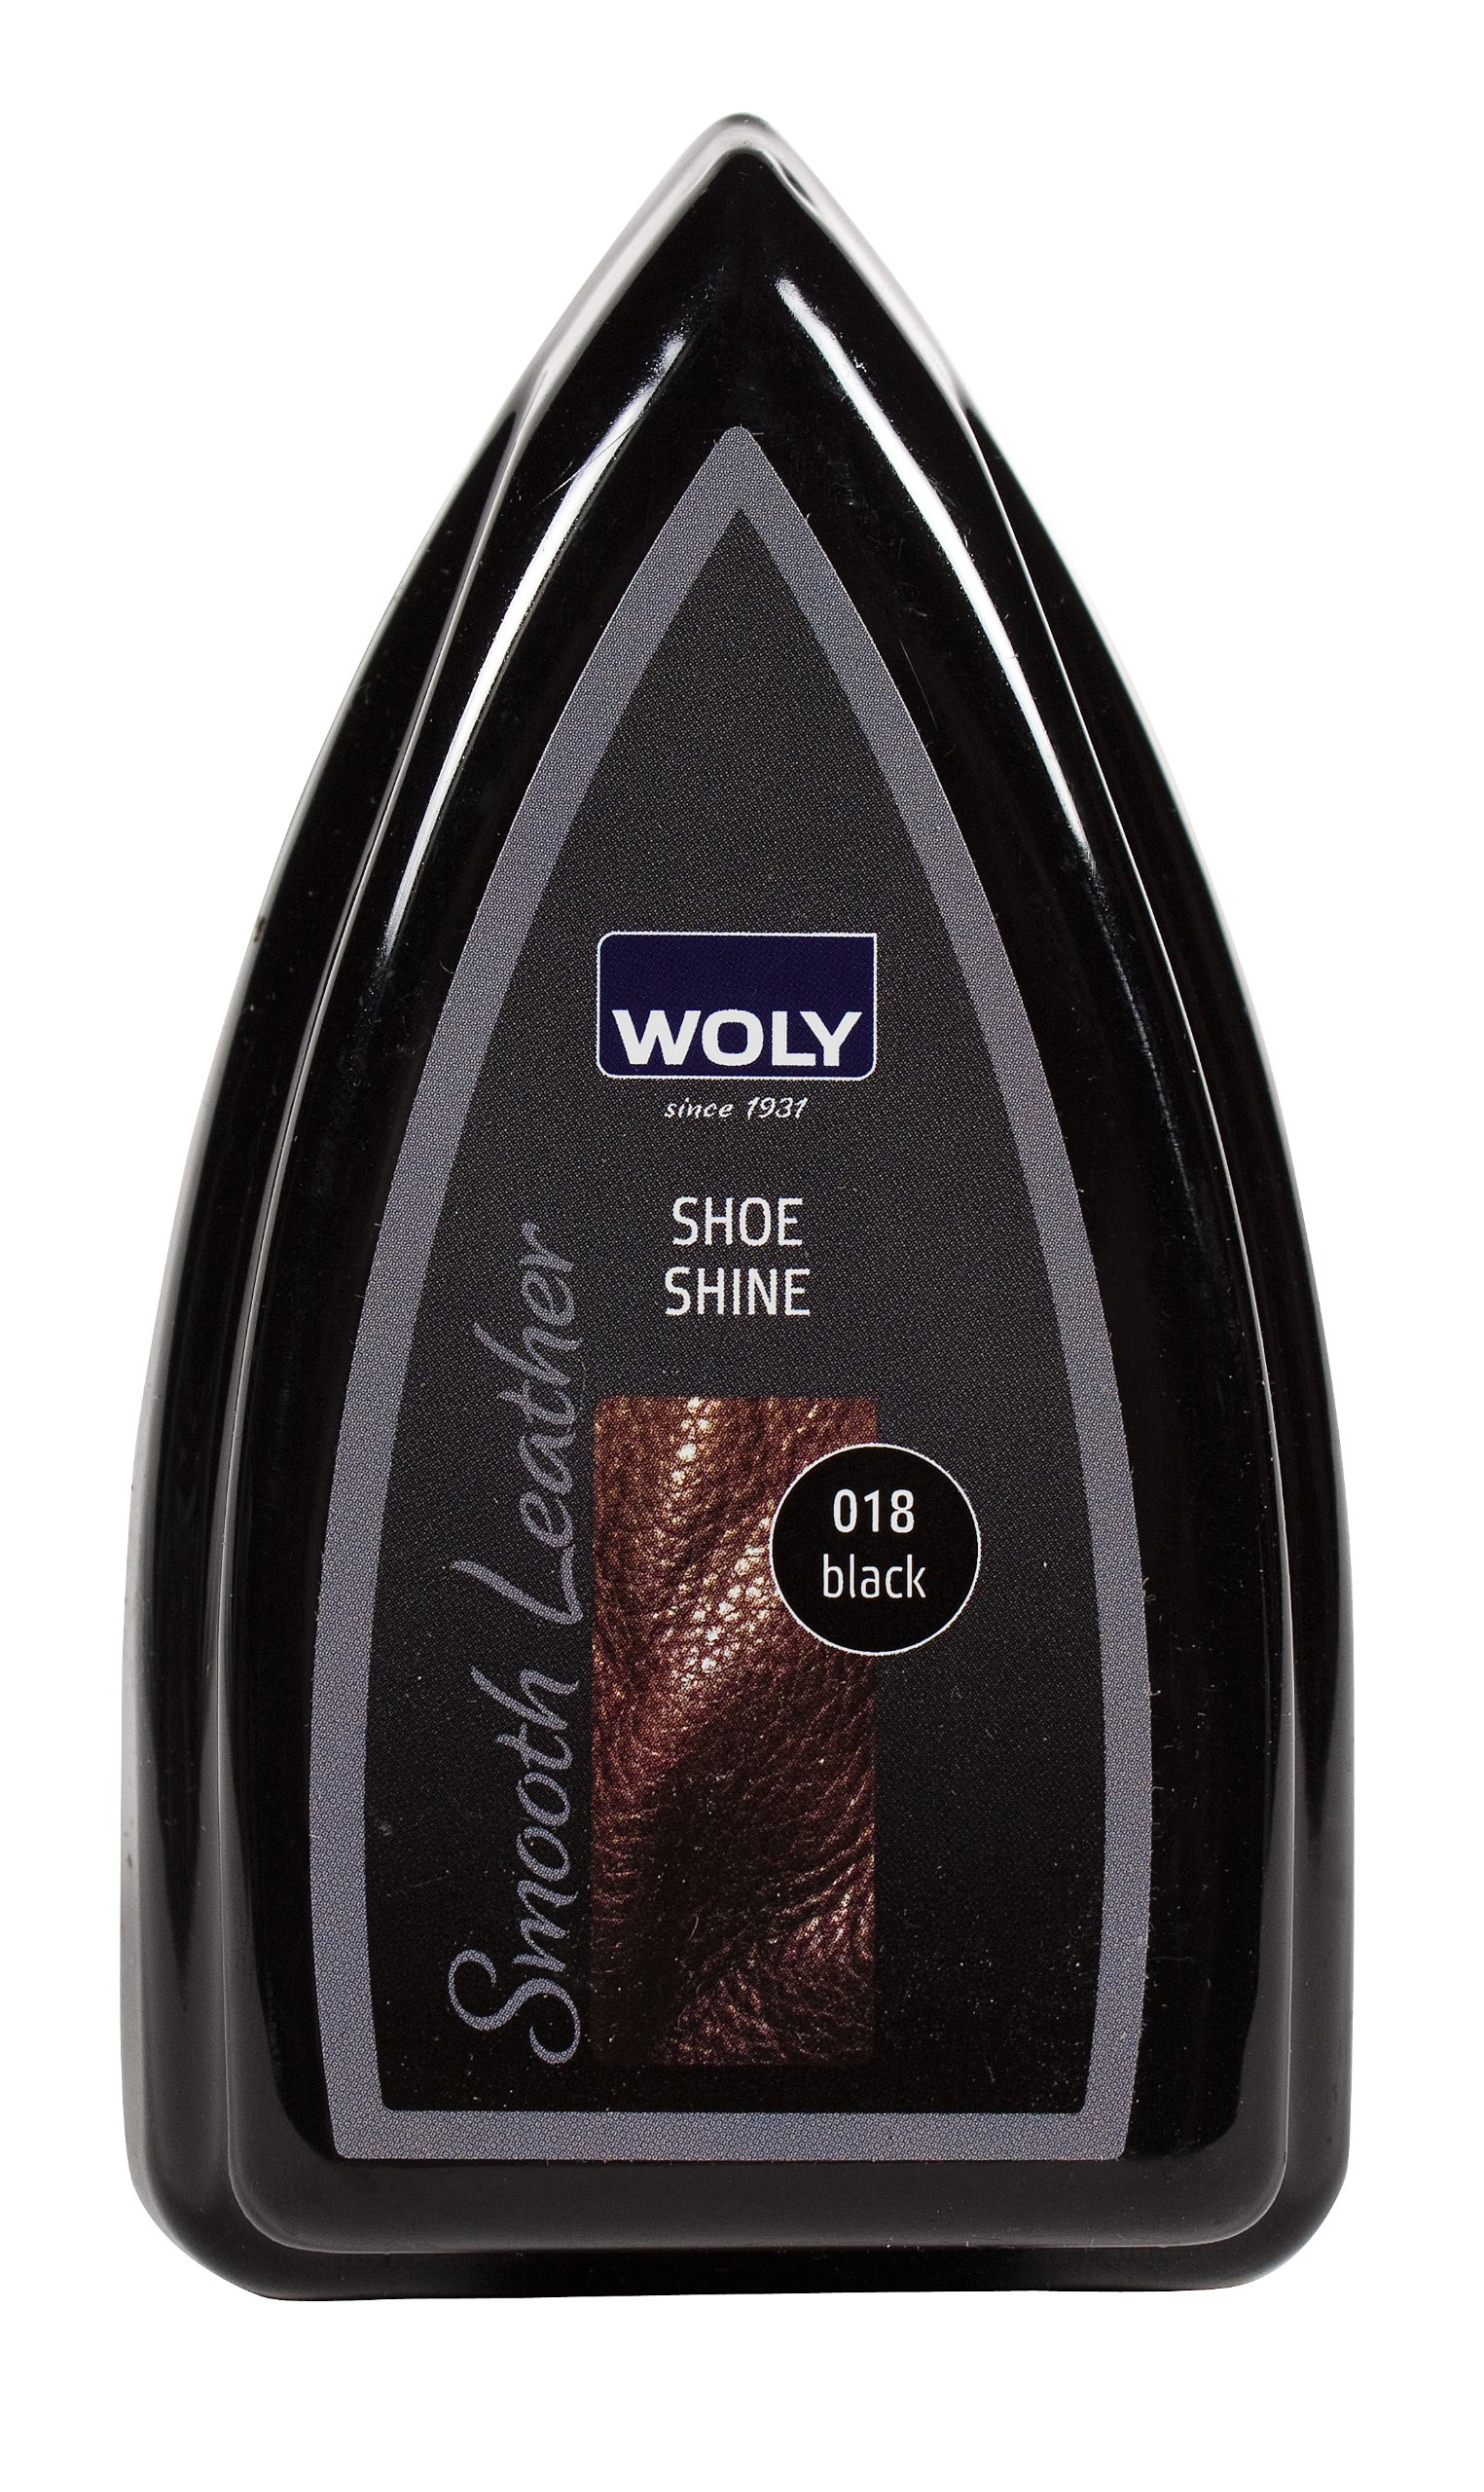 Woly Black Travel Shoe Shine Sponge.Glossy Shine for Designer Shoes. Made in Germany. Small size for travelling.